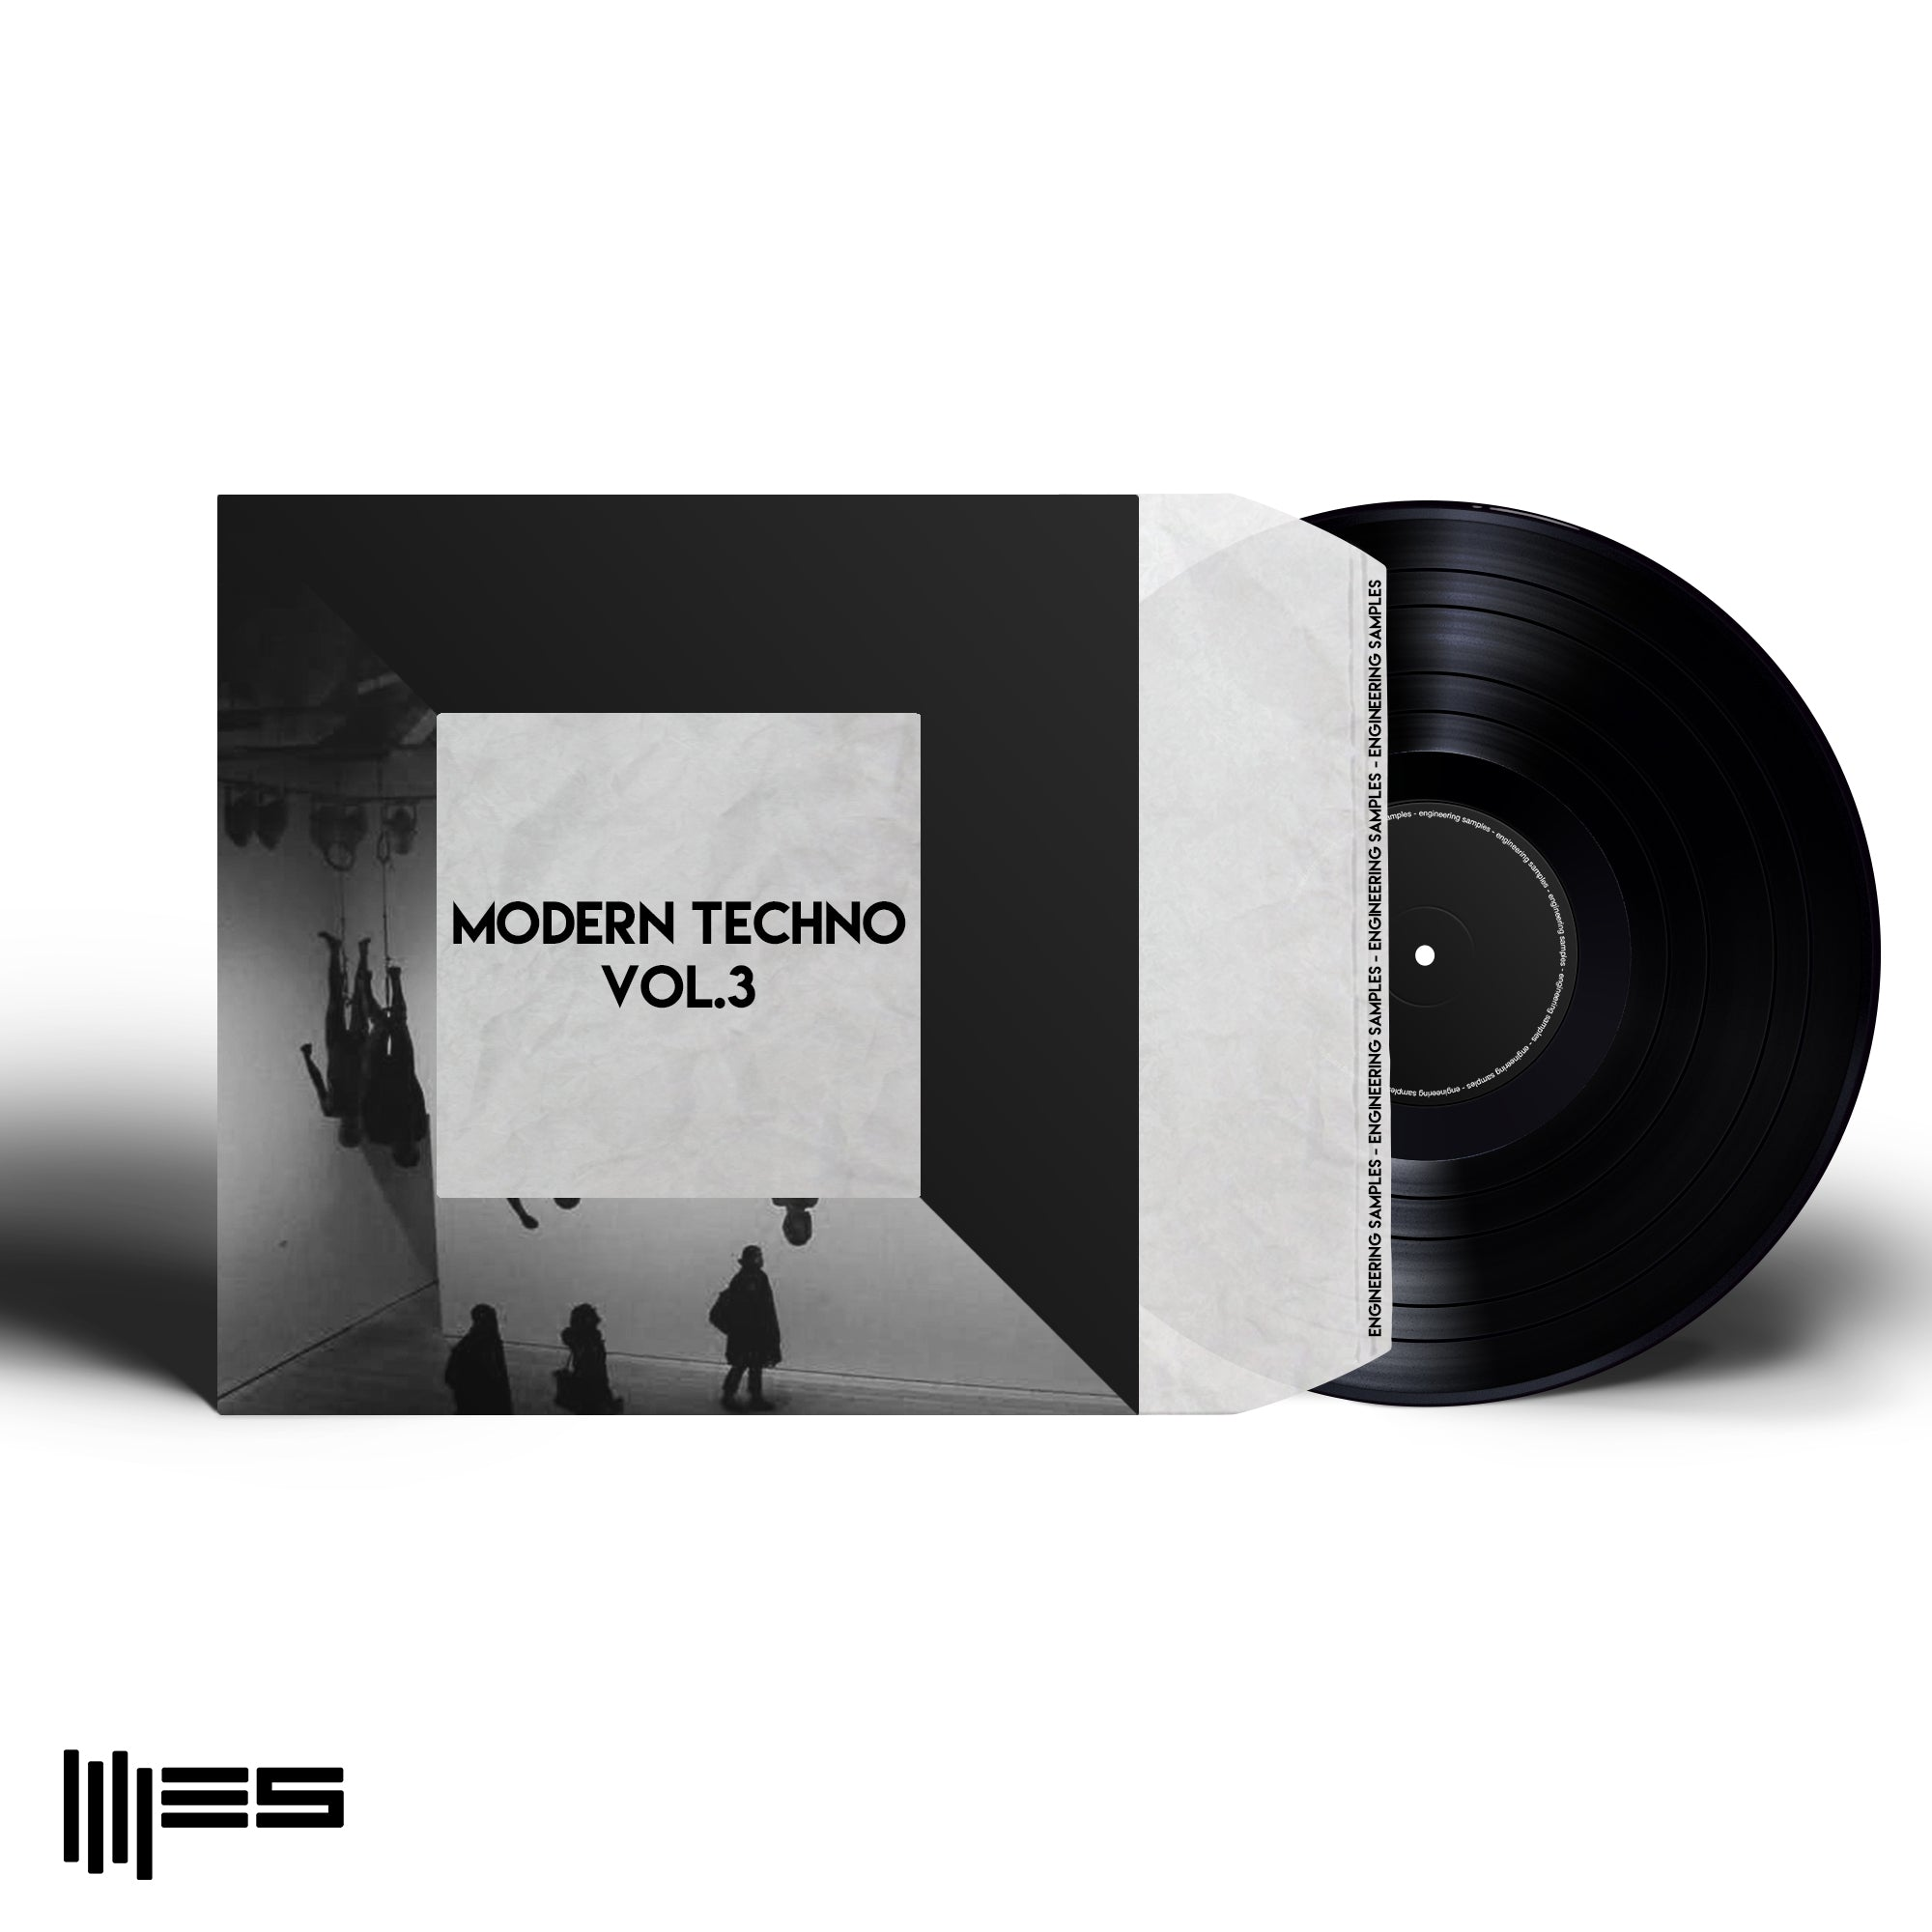 Modern Techno Vol.3